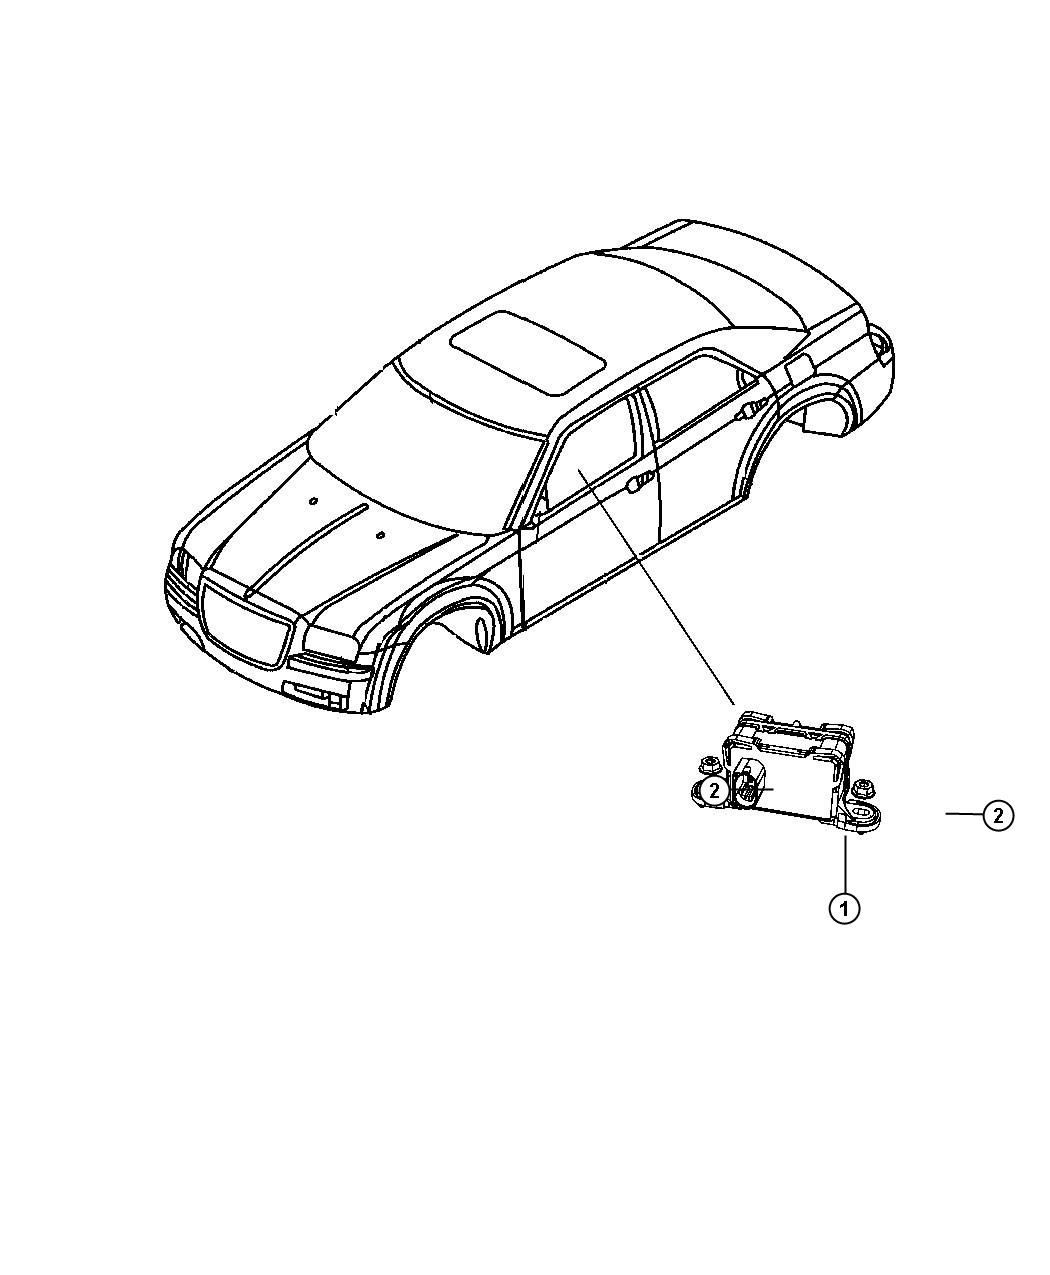 dodge charger sensor  dynamics  used for  lateral acceleration and yaw rate   electronic